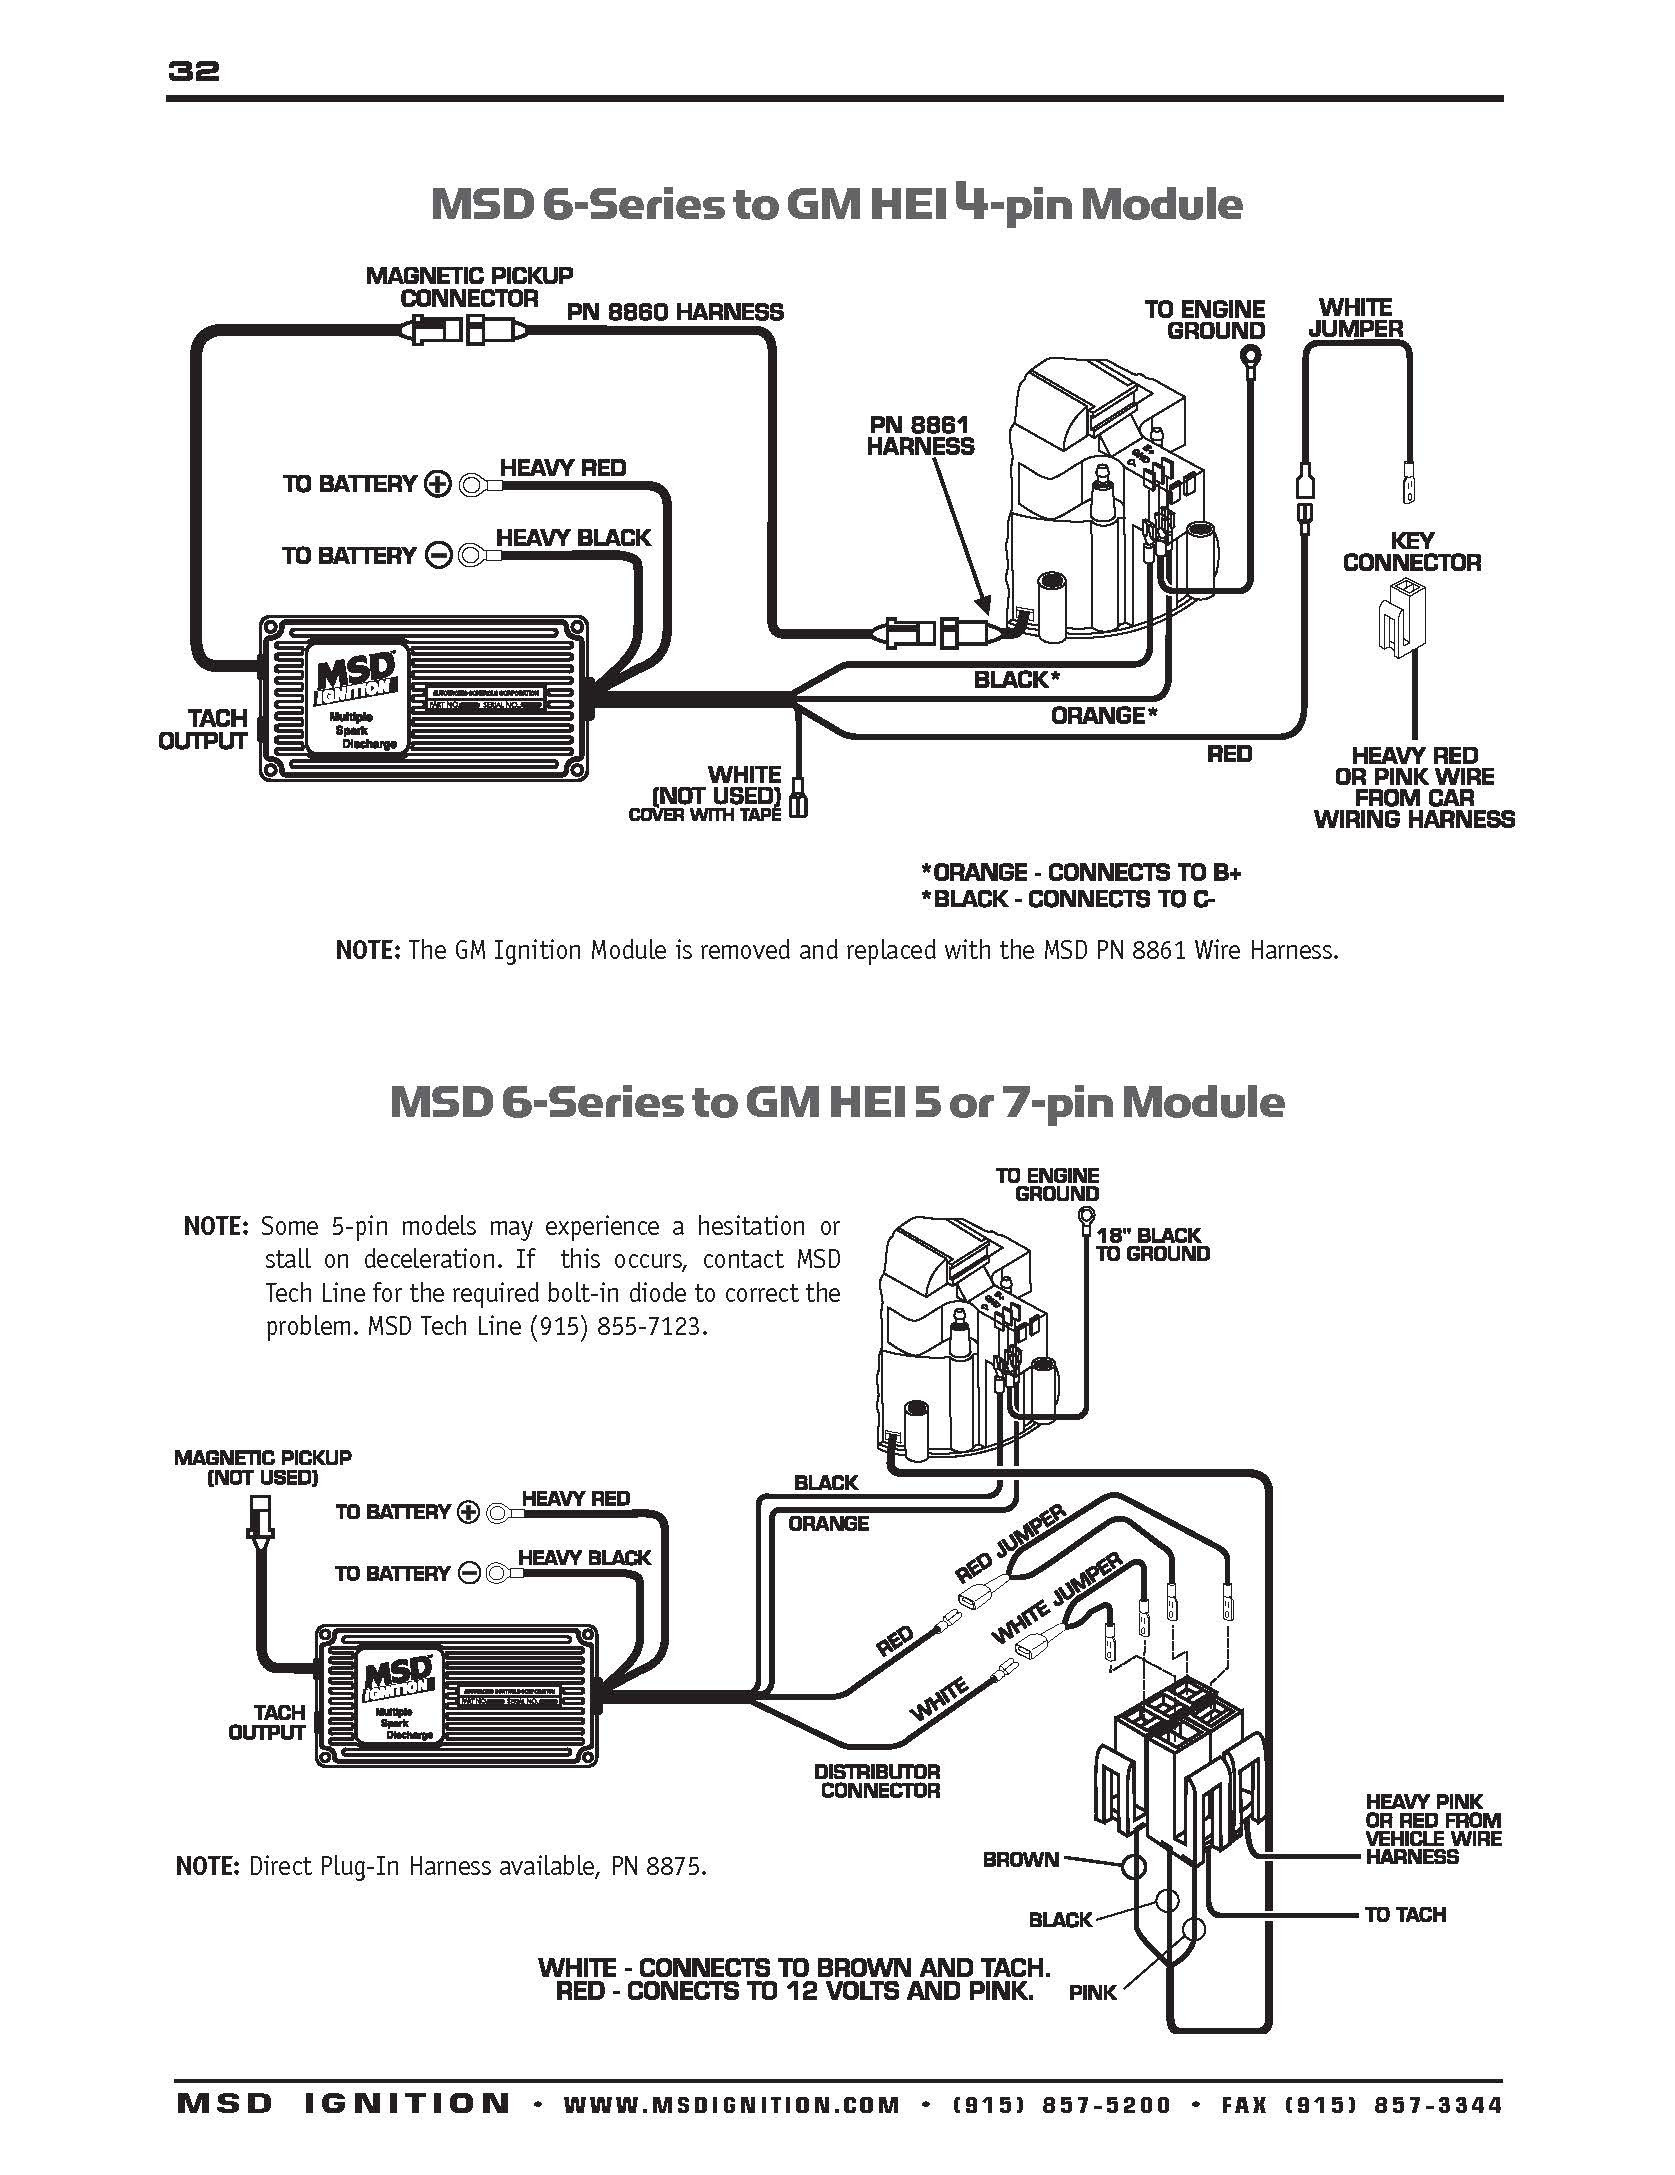 96 Lt1 Wiring Harness Diagram Content Resource Of For A 93 Camaro Schematic Diagrams Rh Ogmconsulting Co 1995 Standalone